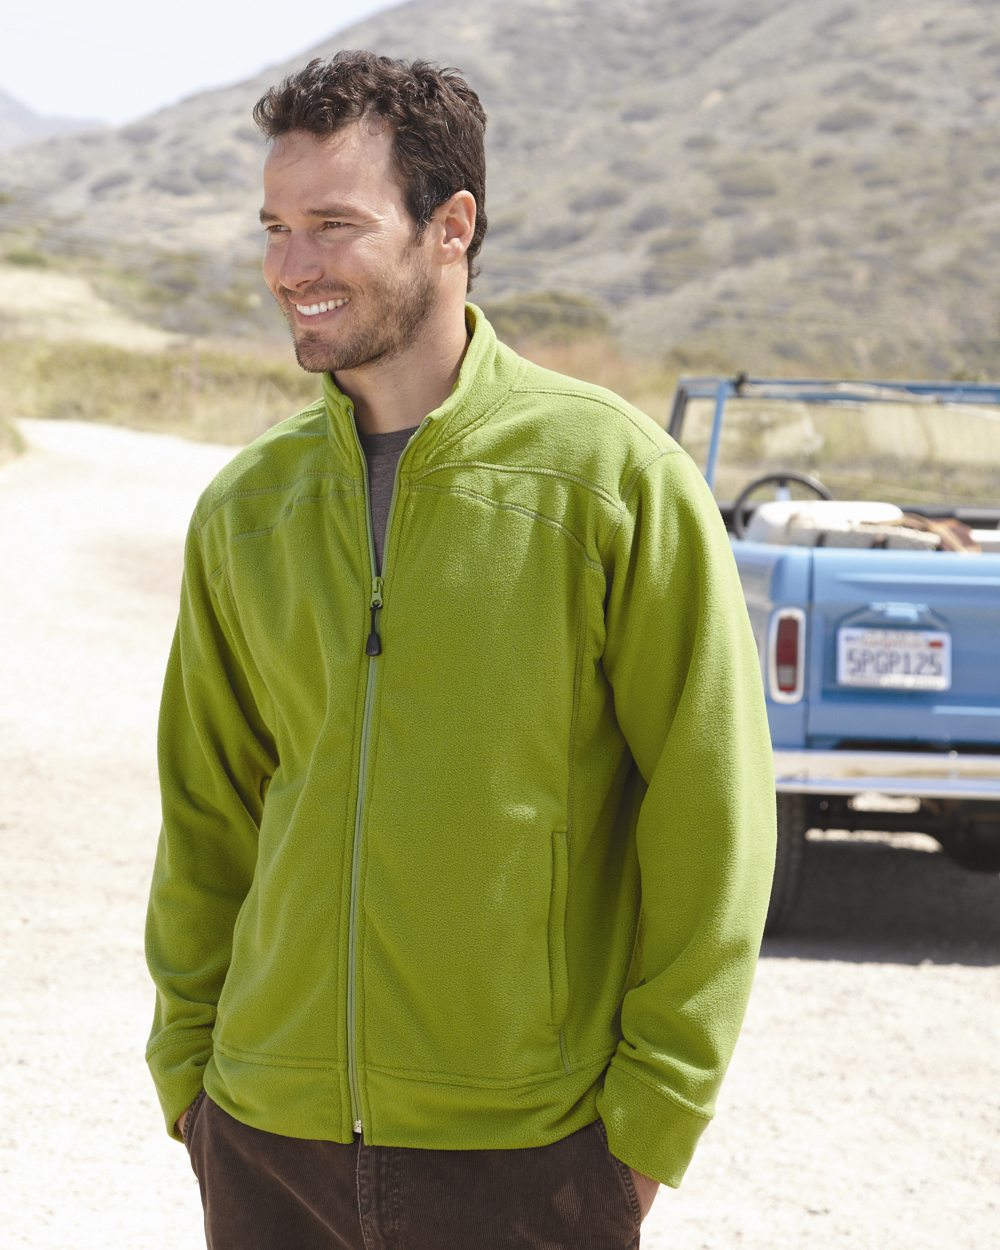 Colorado Clothing 5289 - Lightweight Microfleece Full-Zip Jacket